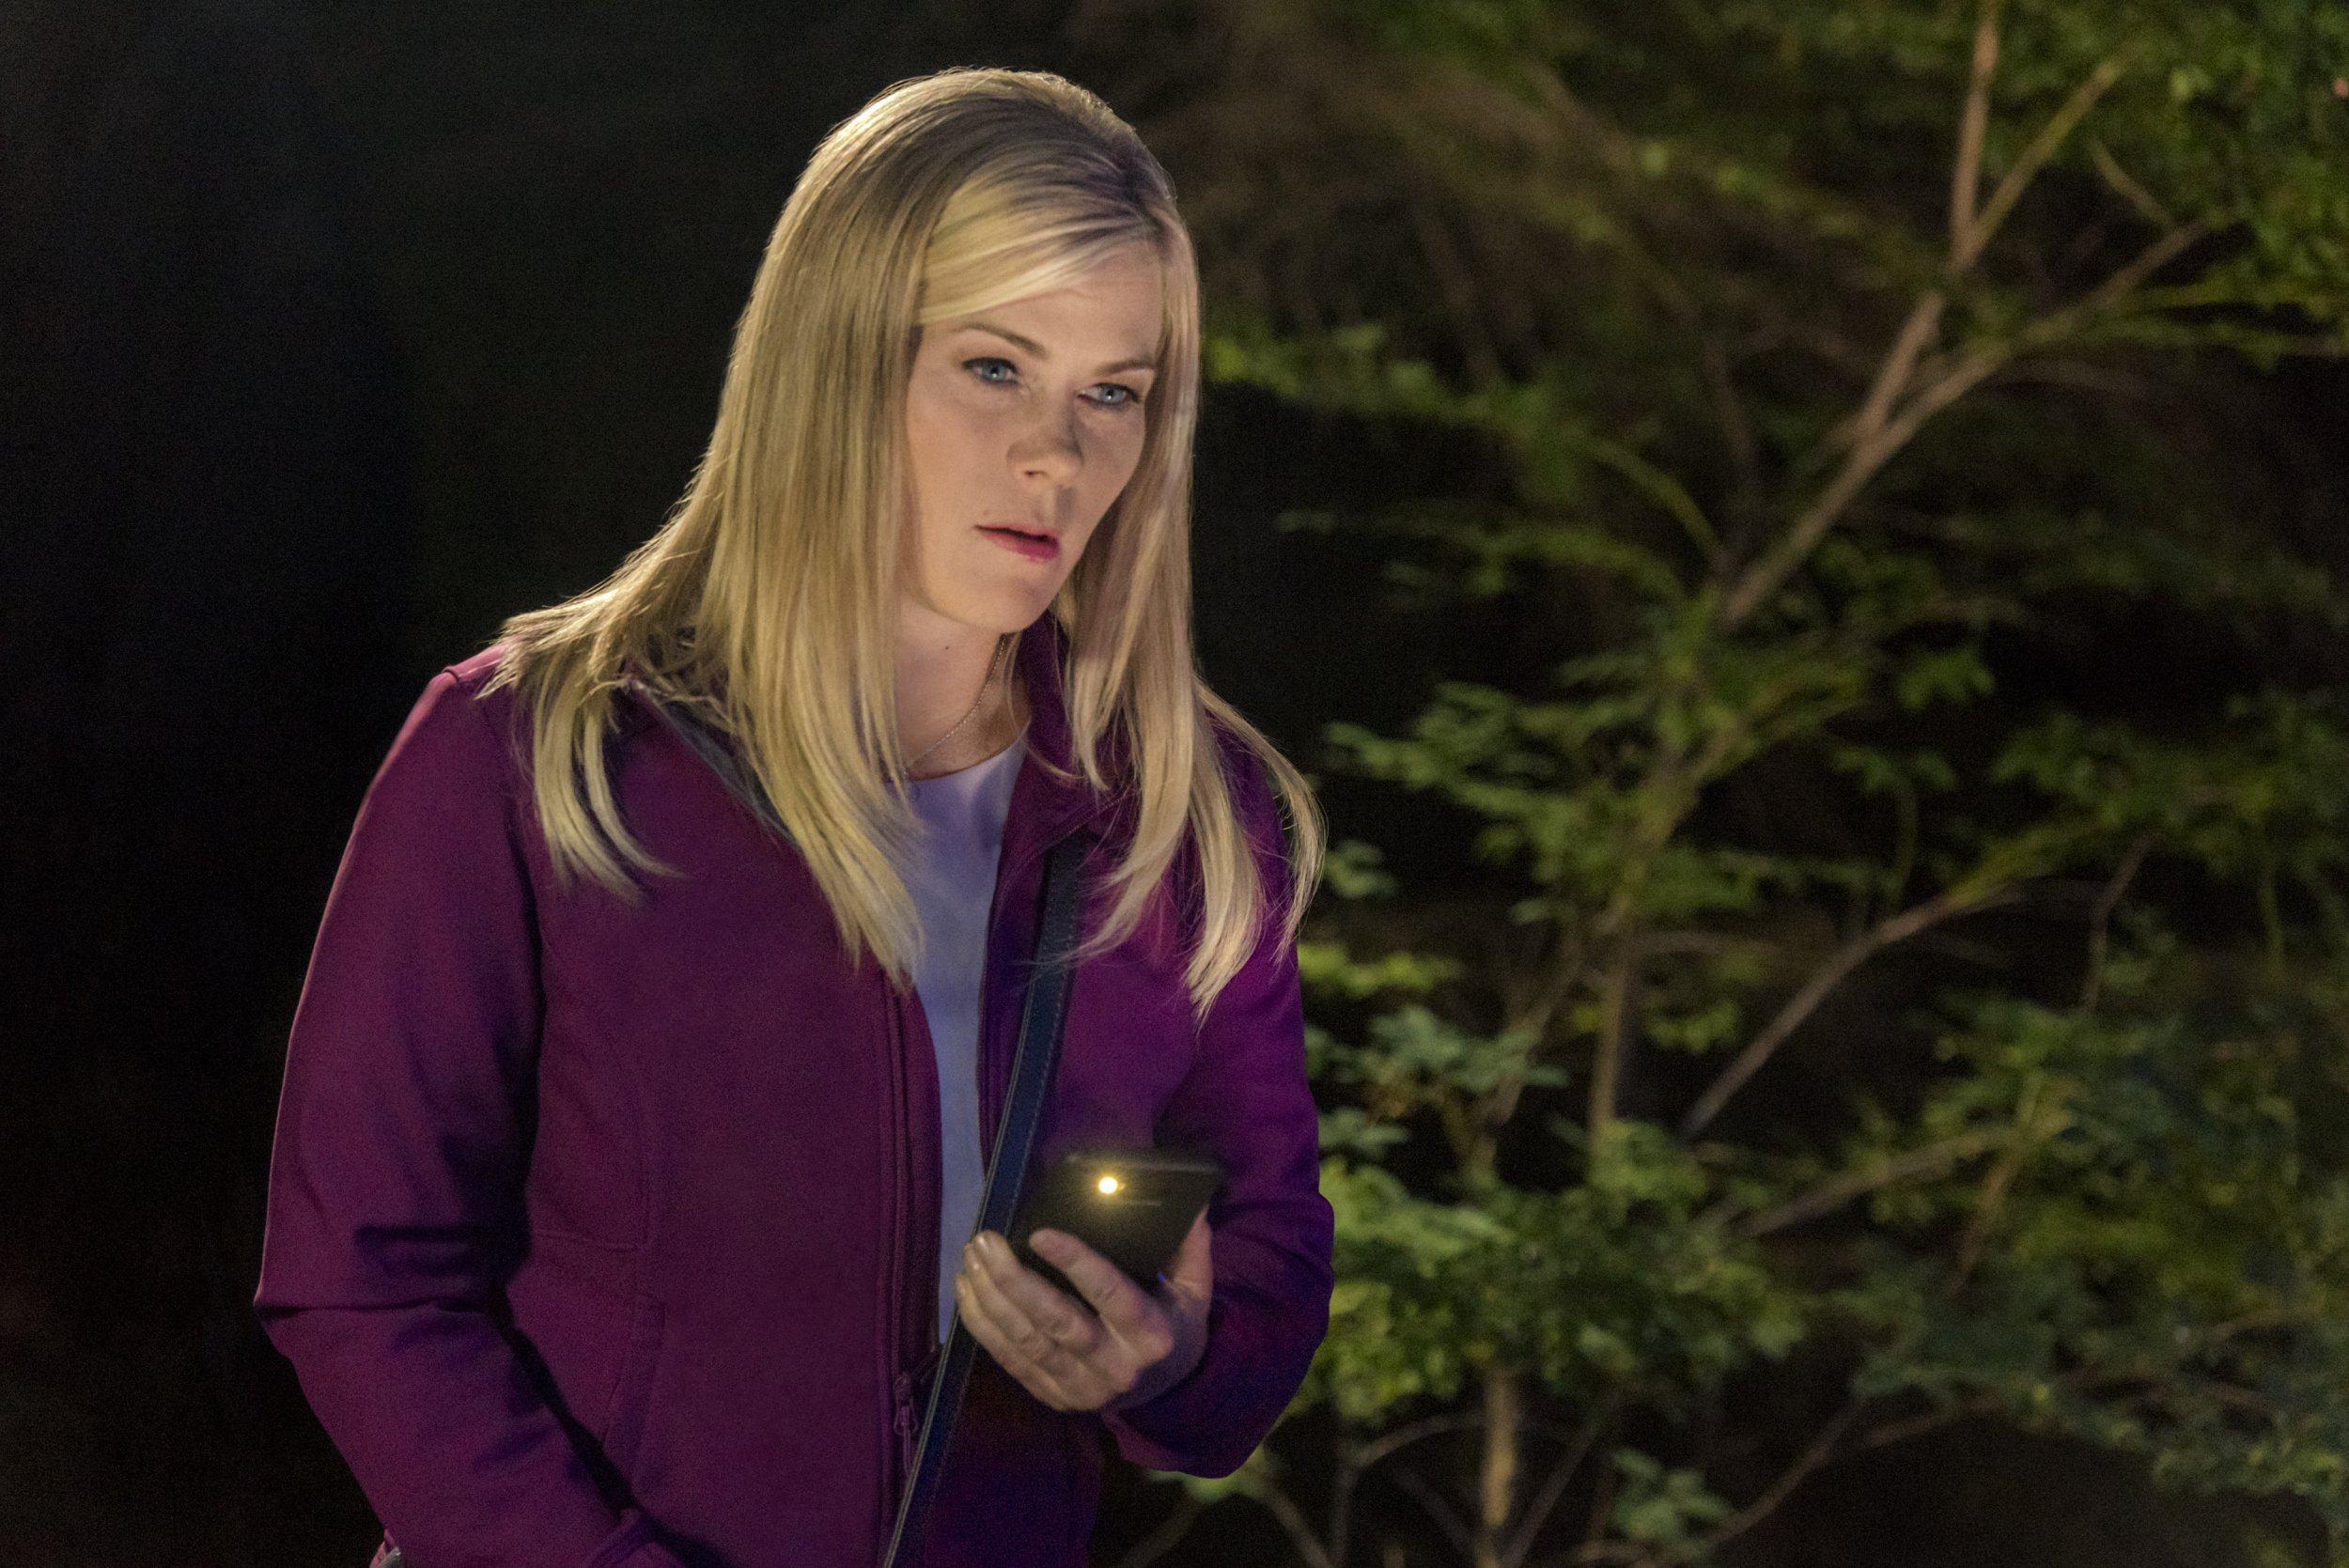 'Days of Our Lives' Star Alison Sweeney's Love of True Crime Podcasts Inspired Her New Hallmark Series 'Chronicle Mysteries'